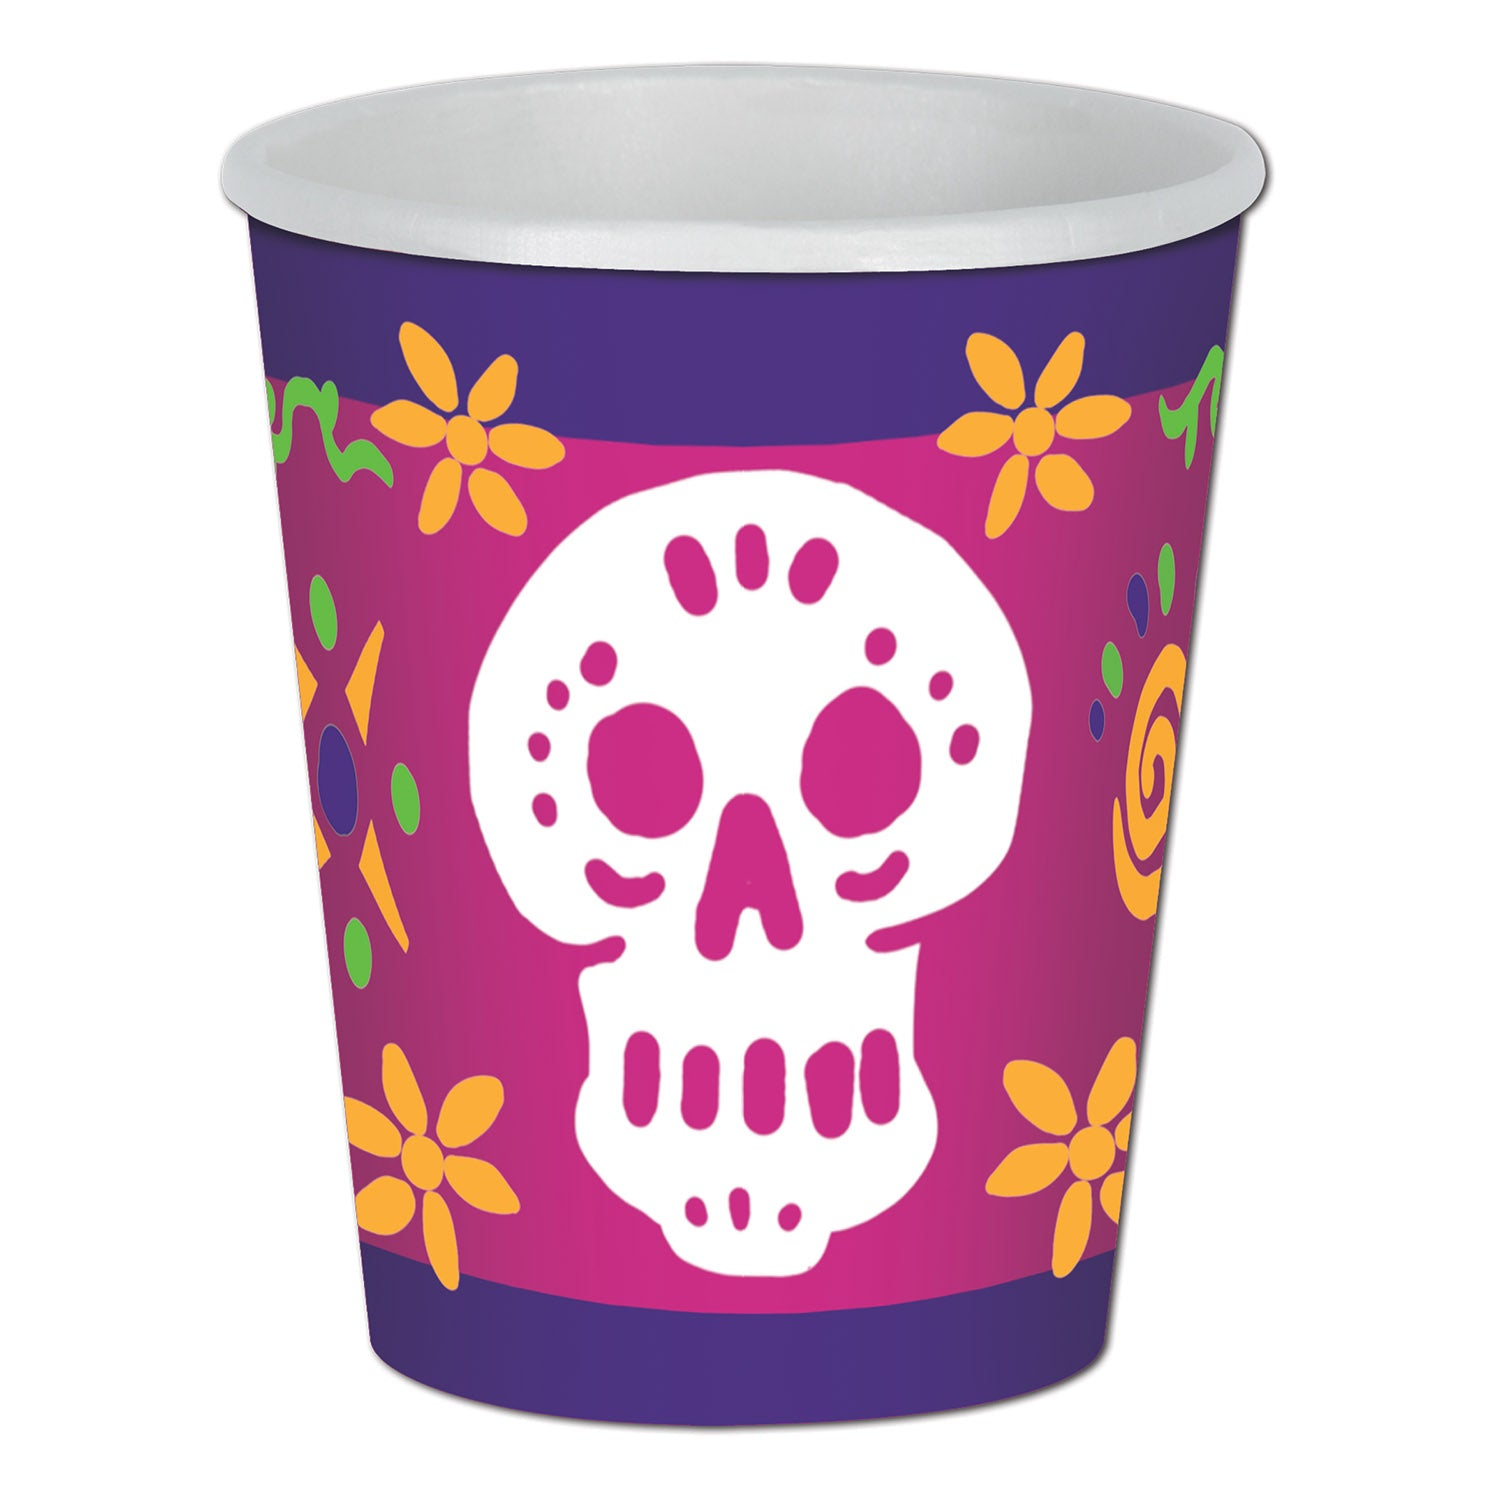 Day Of The Dead Beverage Cups (8/Pkg) by Beistle - Day of the Dead Theme Decorations